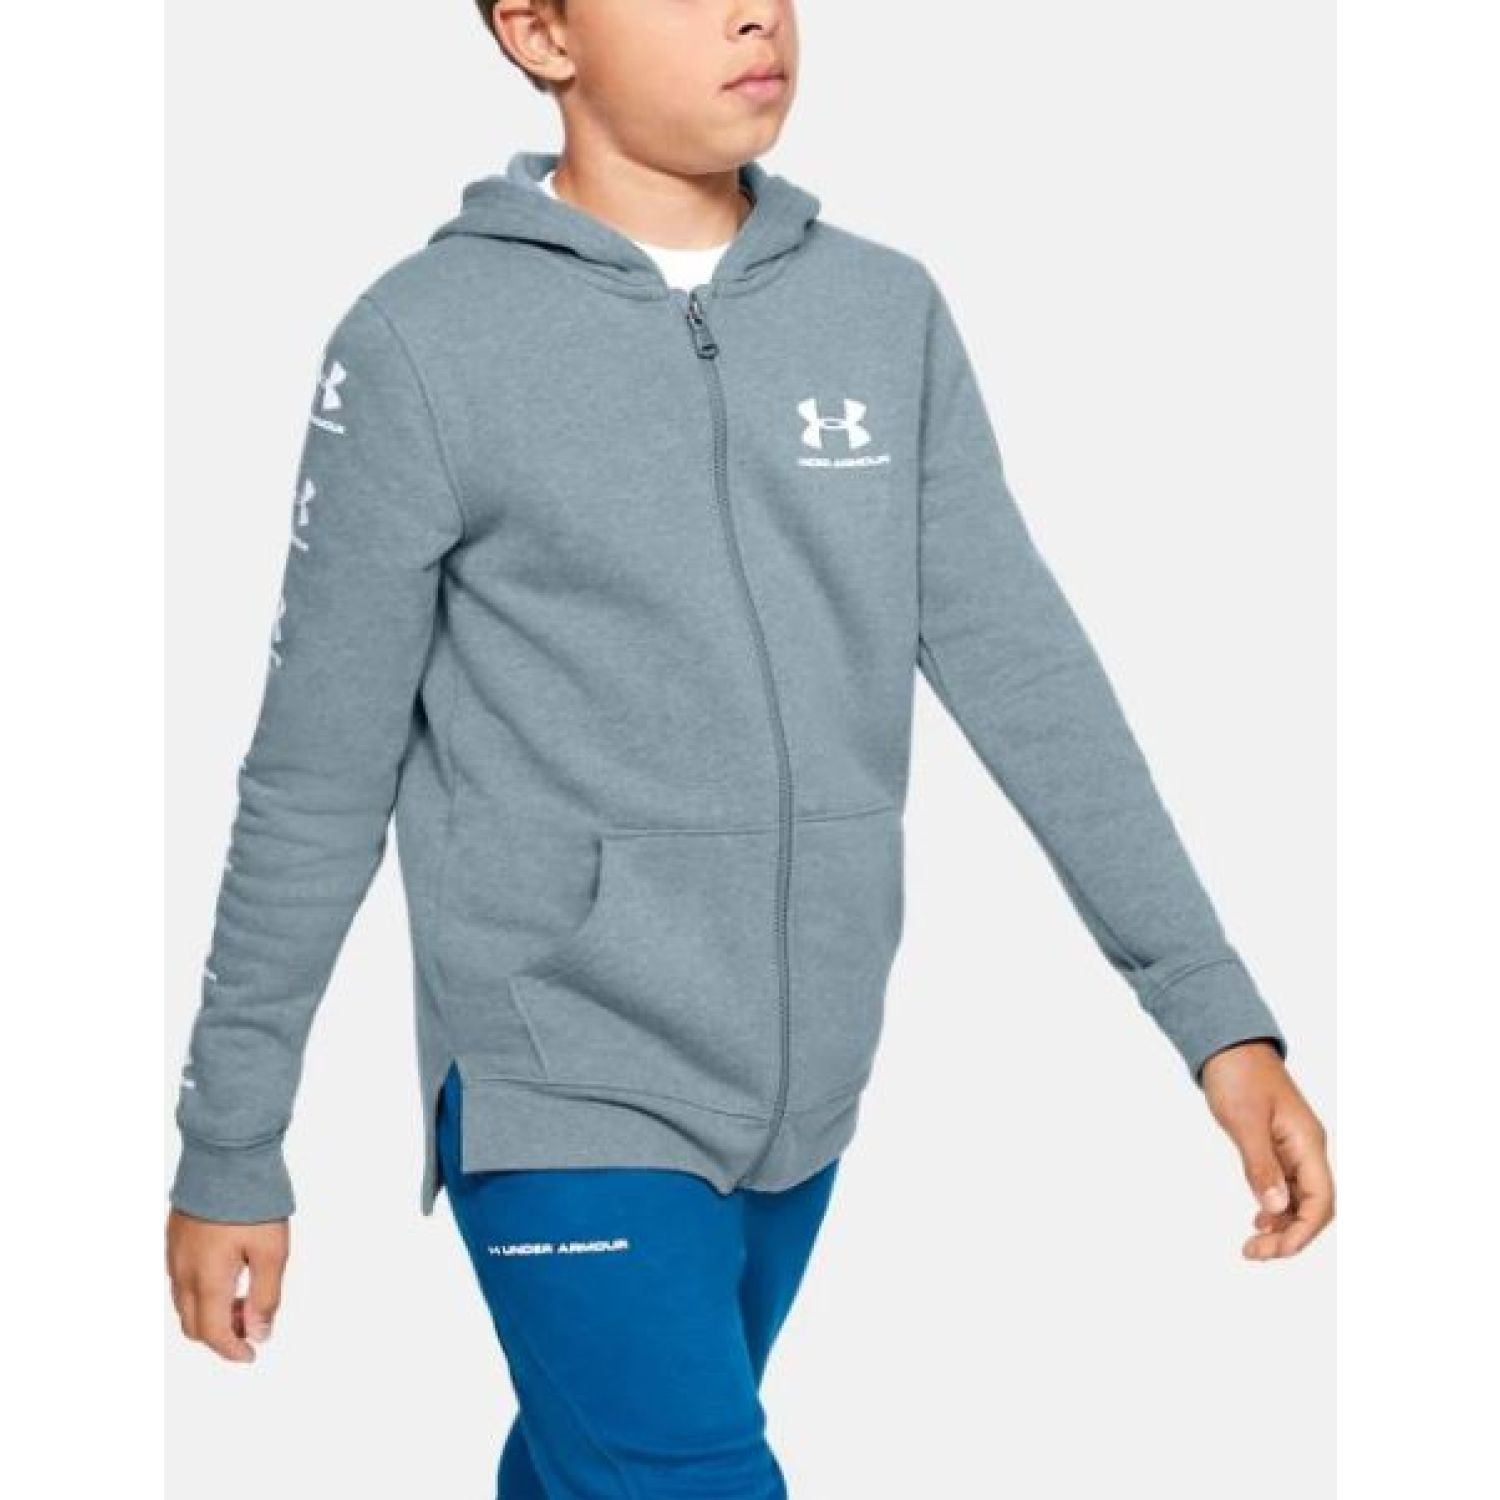 Under Armour Rival Full Zip Hoody Verde Hoodies Deportivos